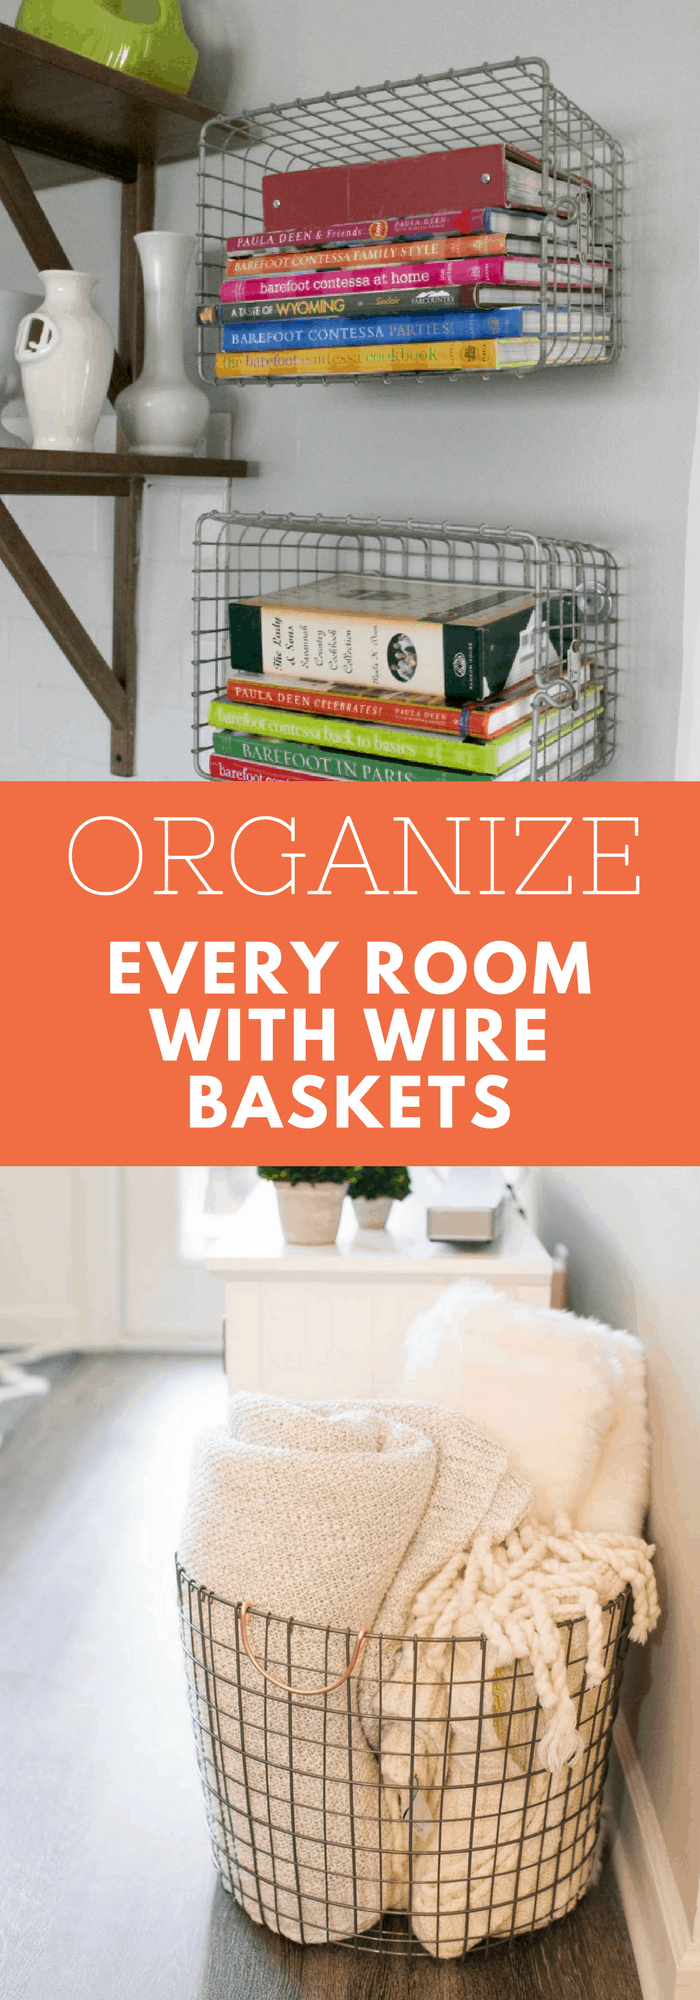 Organization--Organize Every Room with Wire Baskets